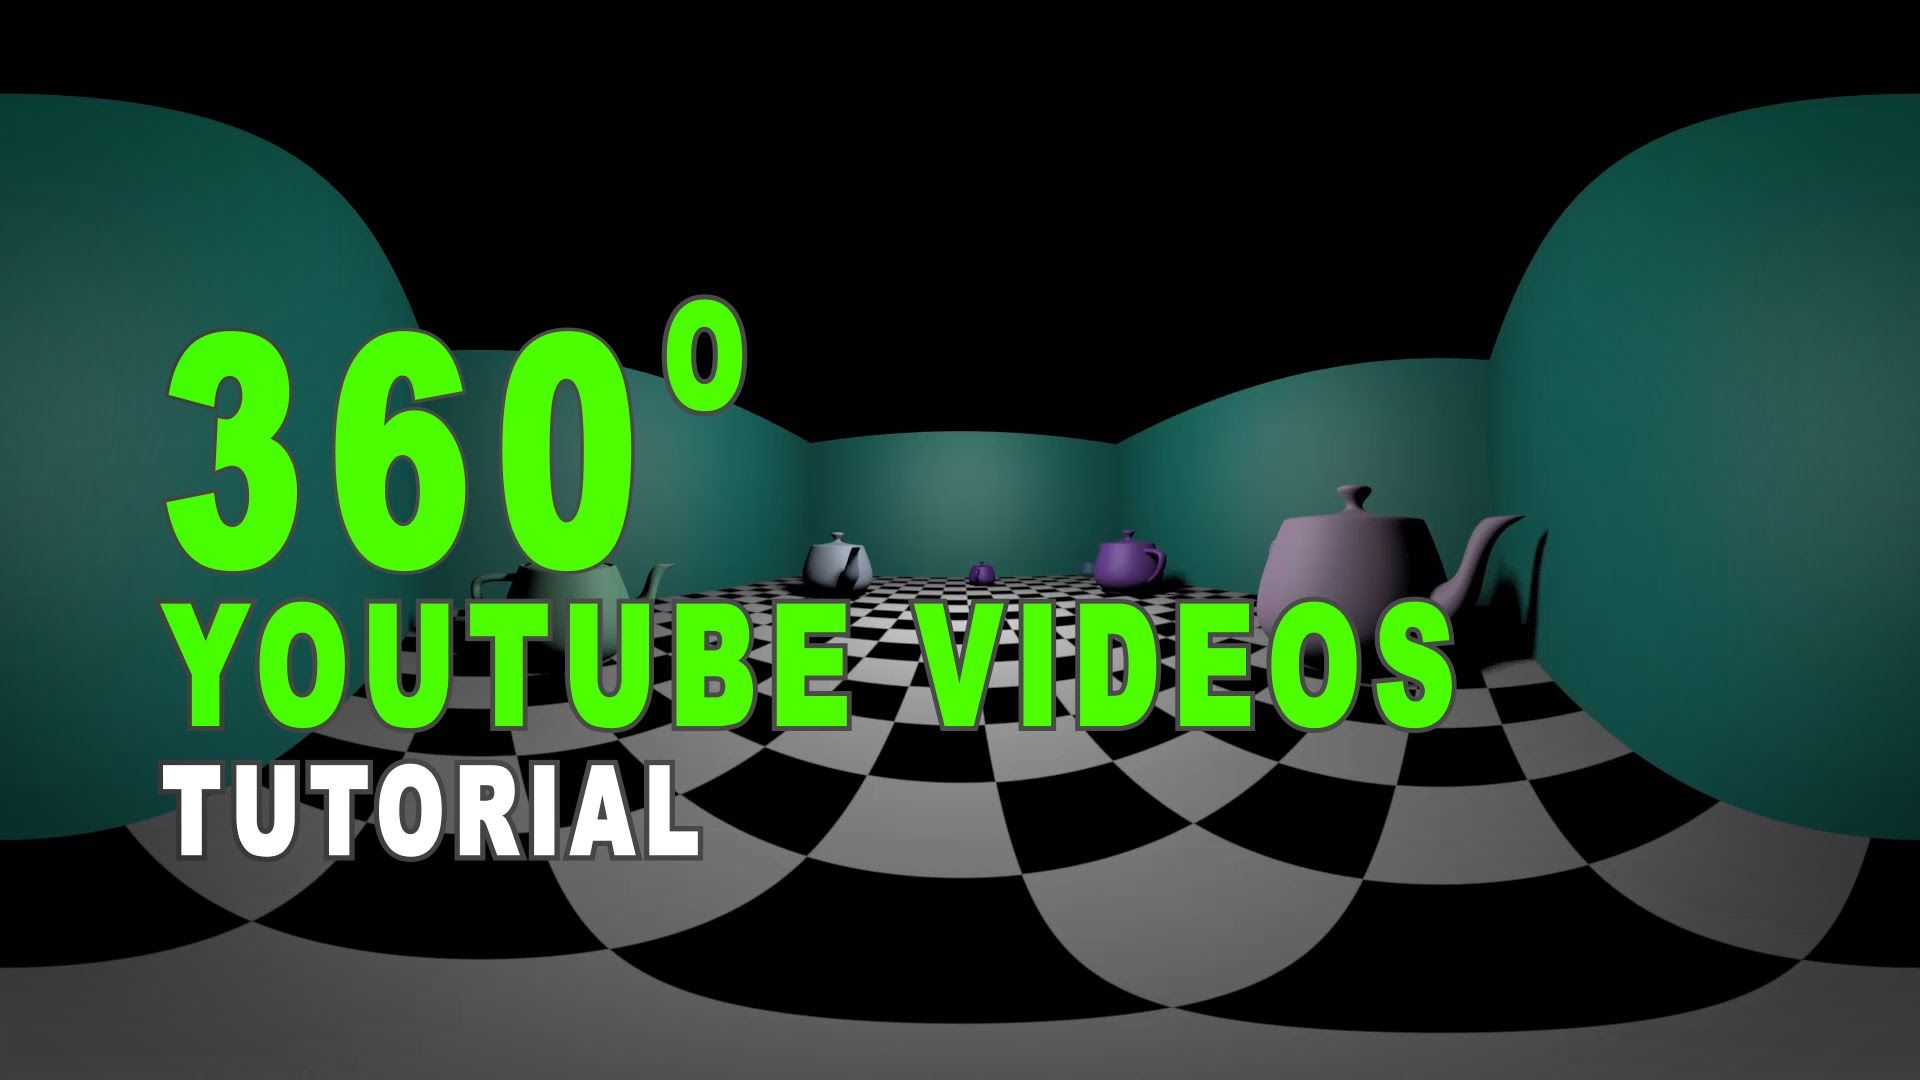 360 degree camera tutorial how to create your own 360 degree 360 degree camera tutorial how to create your own 360 degree virtual reality youtube videos baditri Image collections